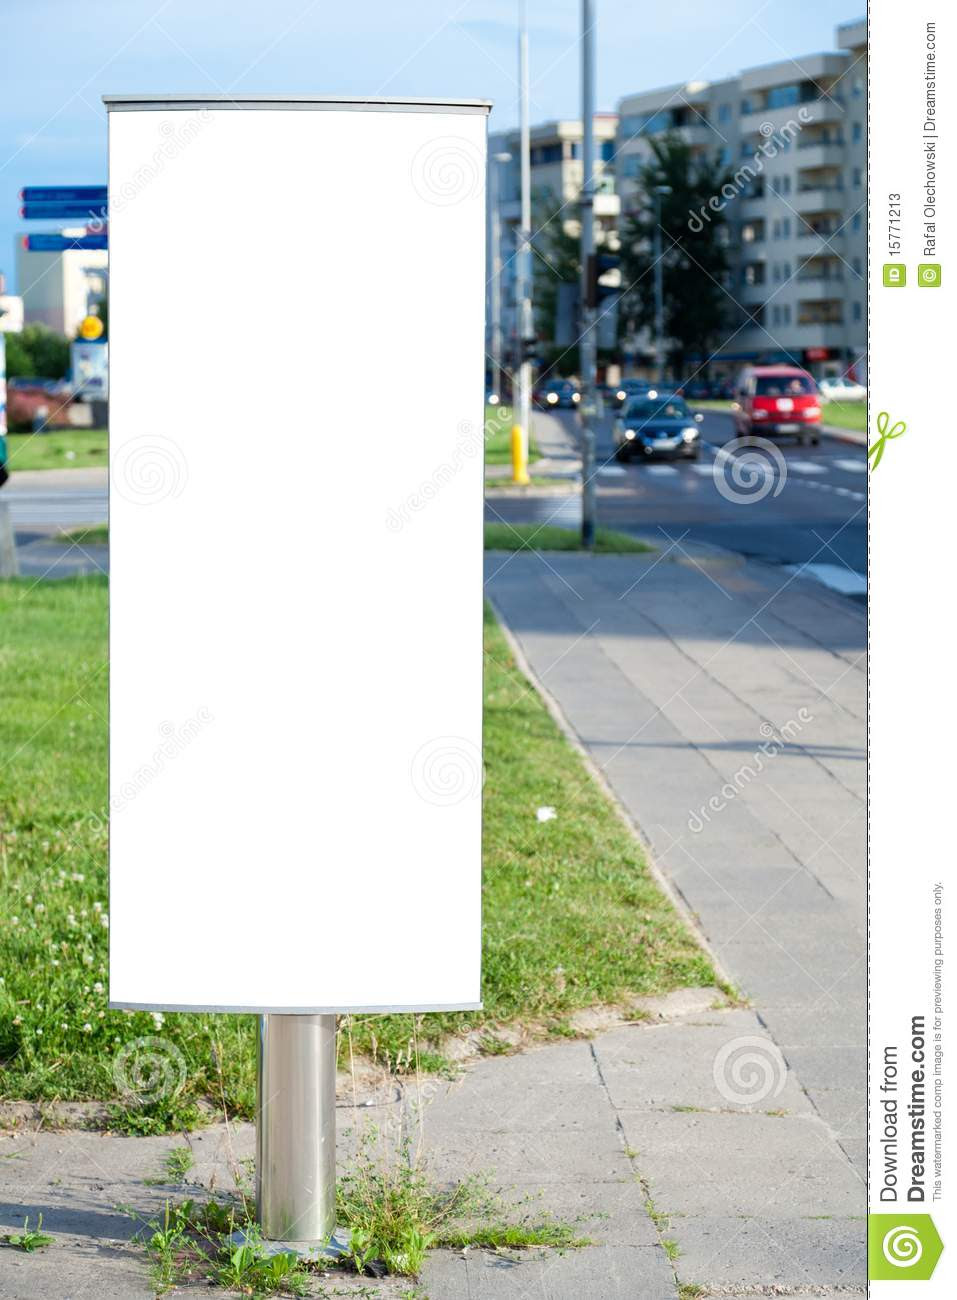 Blank Billboard In A City Stock Photos - Image: 15771213